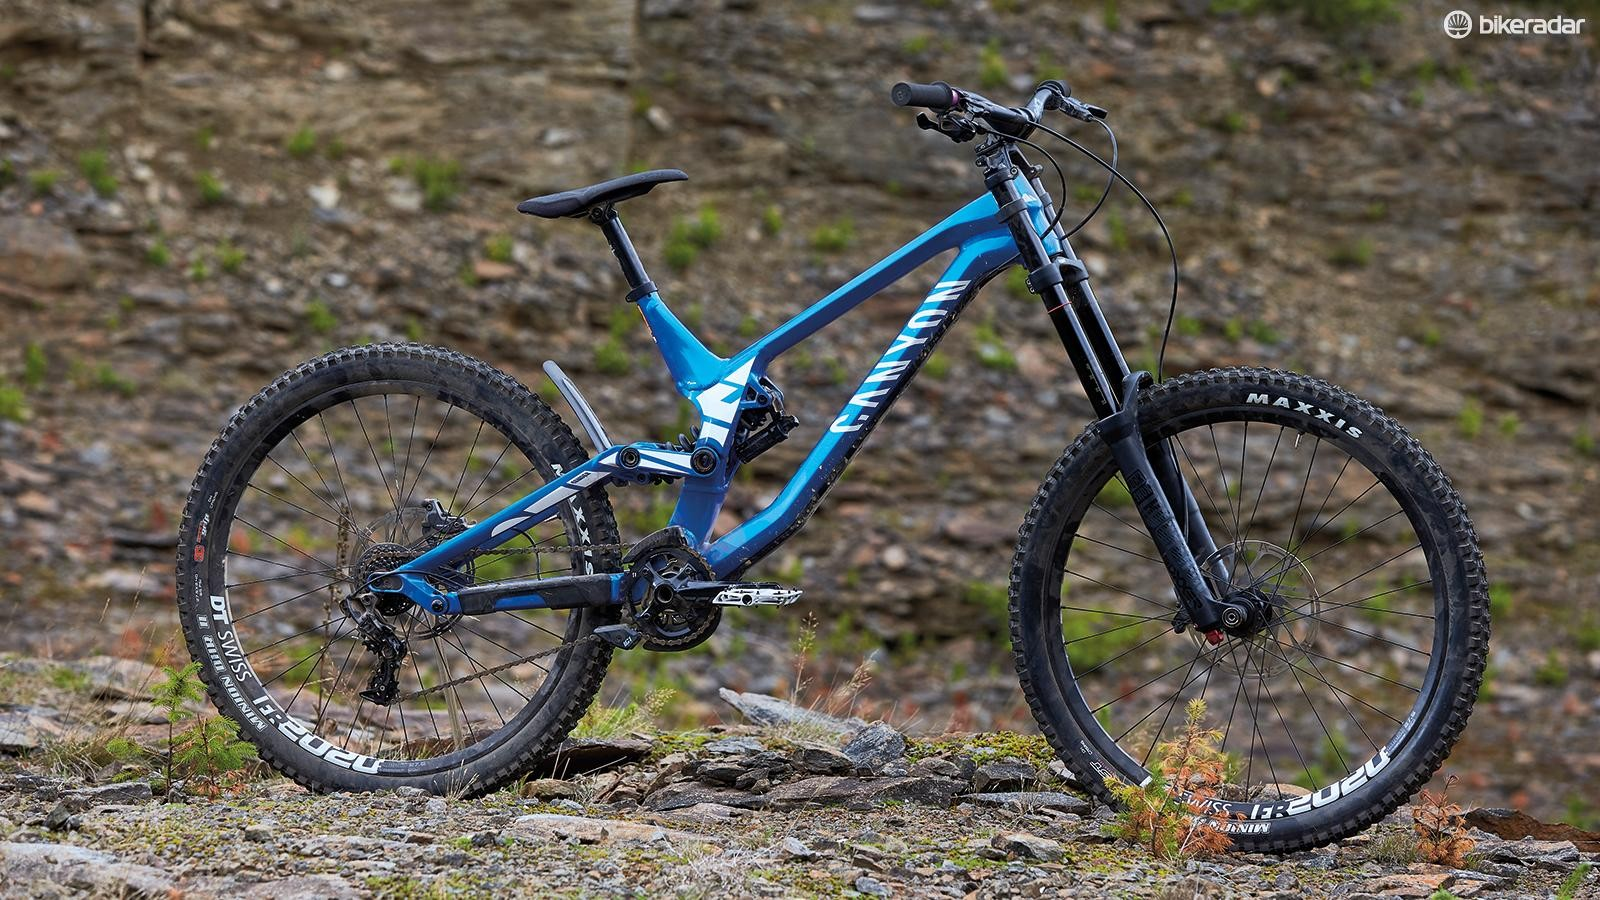 This complete bike costs less than some DH frames but offers a great ride